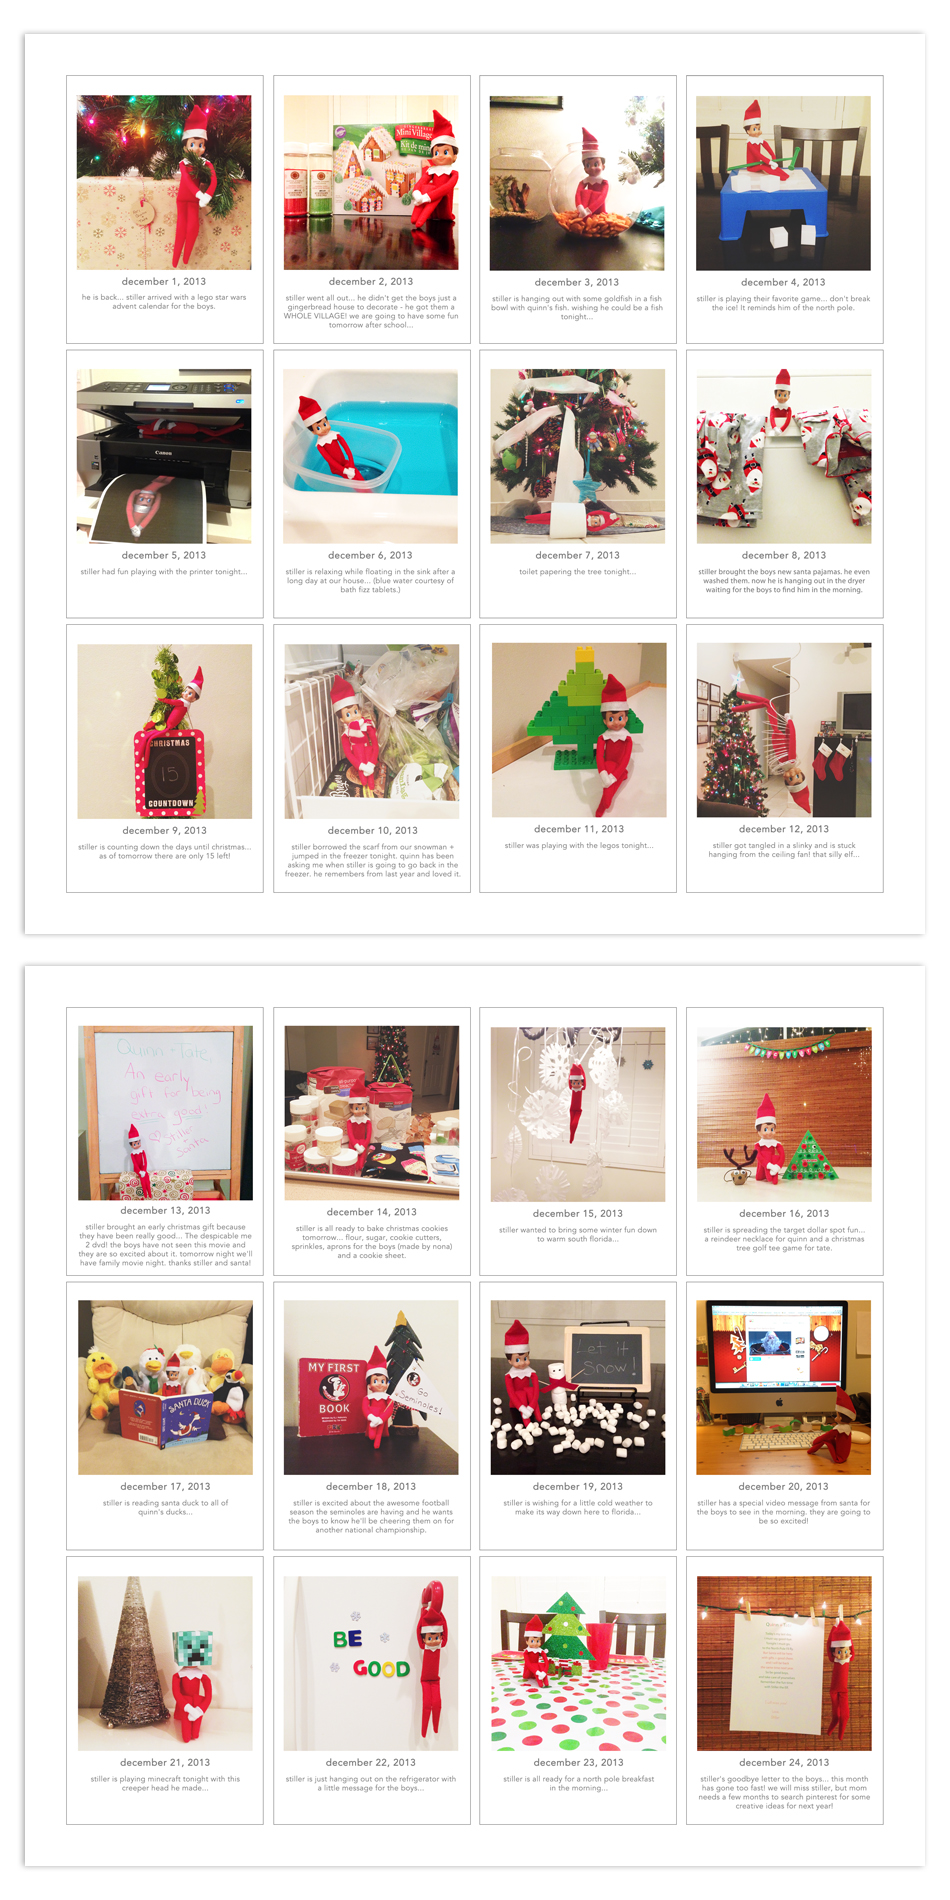 Document your Elf on the Shelf visit with the December Days photo templates + word art  | December Daily ideas + prompts  |  Modern Scrapbooking  |  Project Life + Digital Project Life  |  Pocket Scrapbooking  << hellotracylarsen.com>>